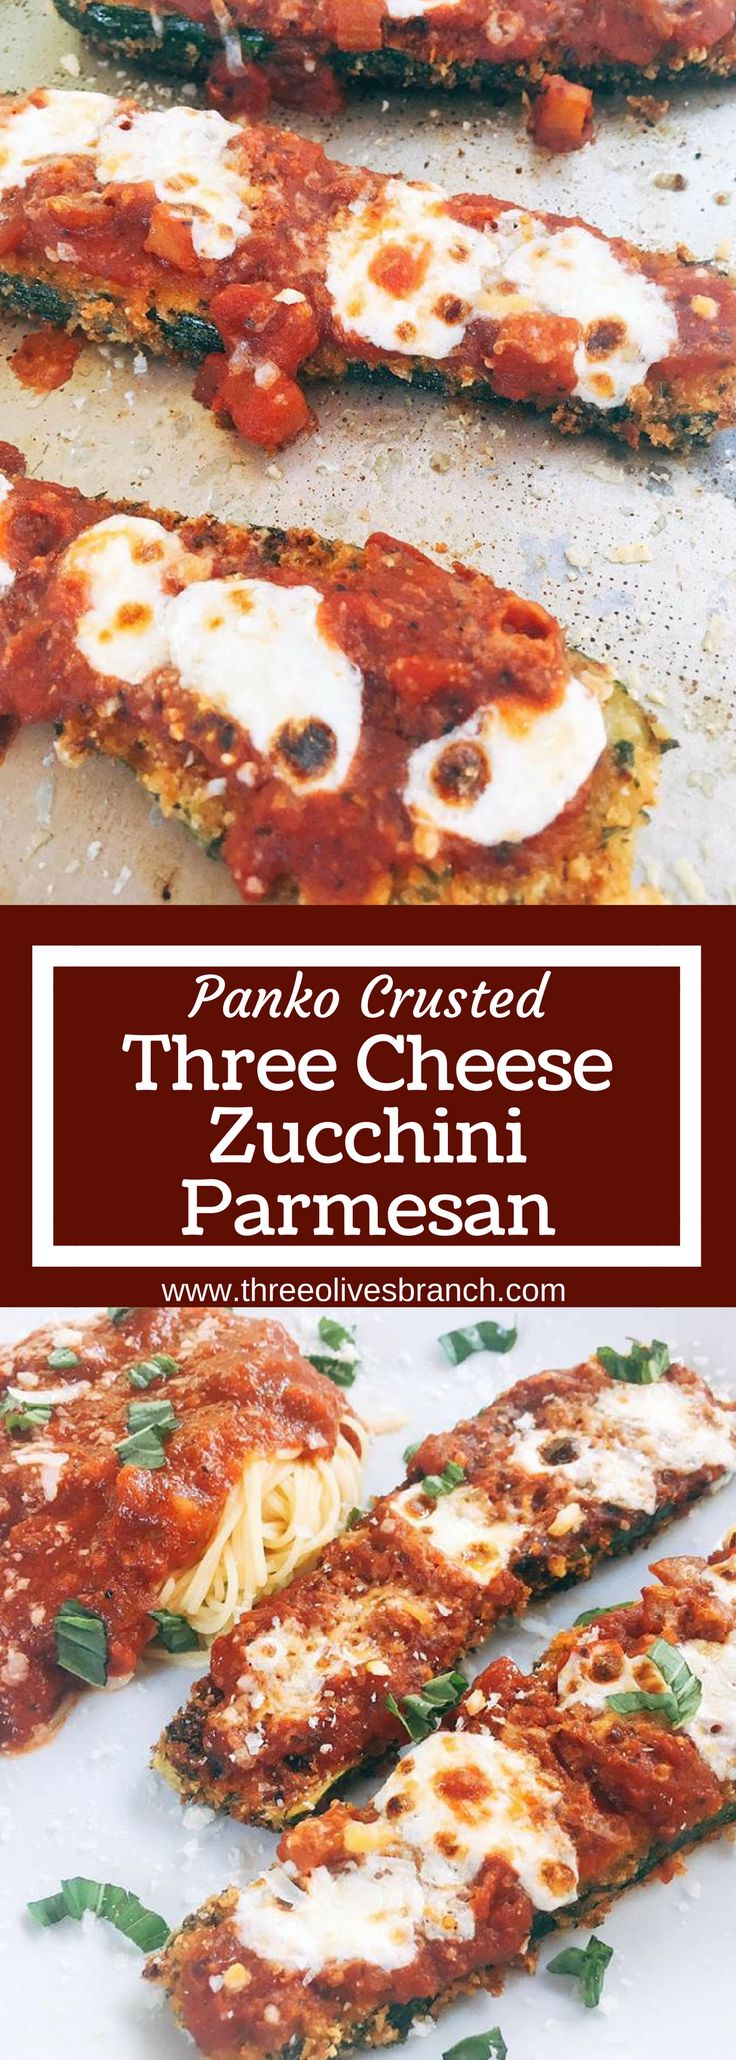 Vegetarian zucchini parm uses three cheeses and a crunchy panko breadcrumb crust to make an amazing alternative to chicken parmesan. Great for weekend meals and finding new ways to use vegetables. | Panko Crusted Three Cheese Zucchini Parmesan | www.threeolivesbranch.com #healthyrecipe #vegetarian #italianrecipe #zucchini